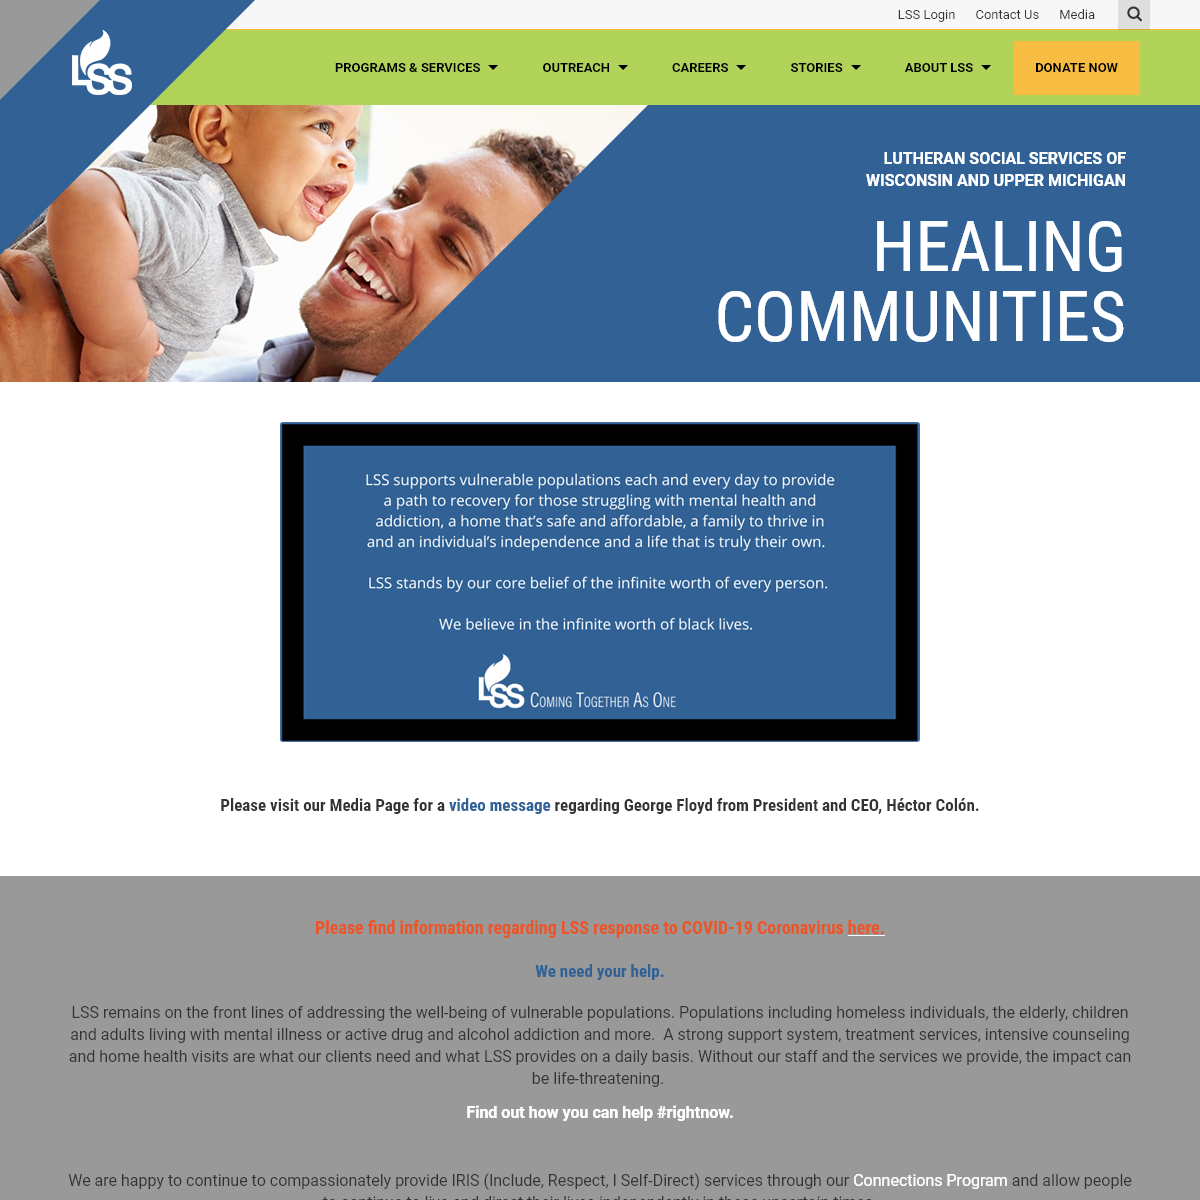 Lutheran Social Services of Wisconsin and Upper Michigan